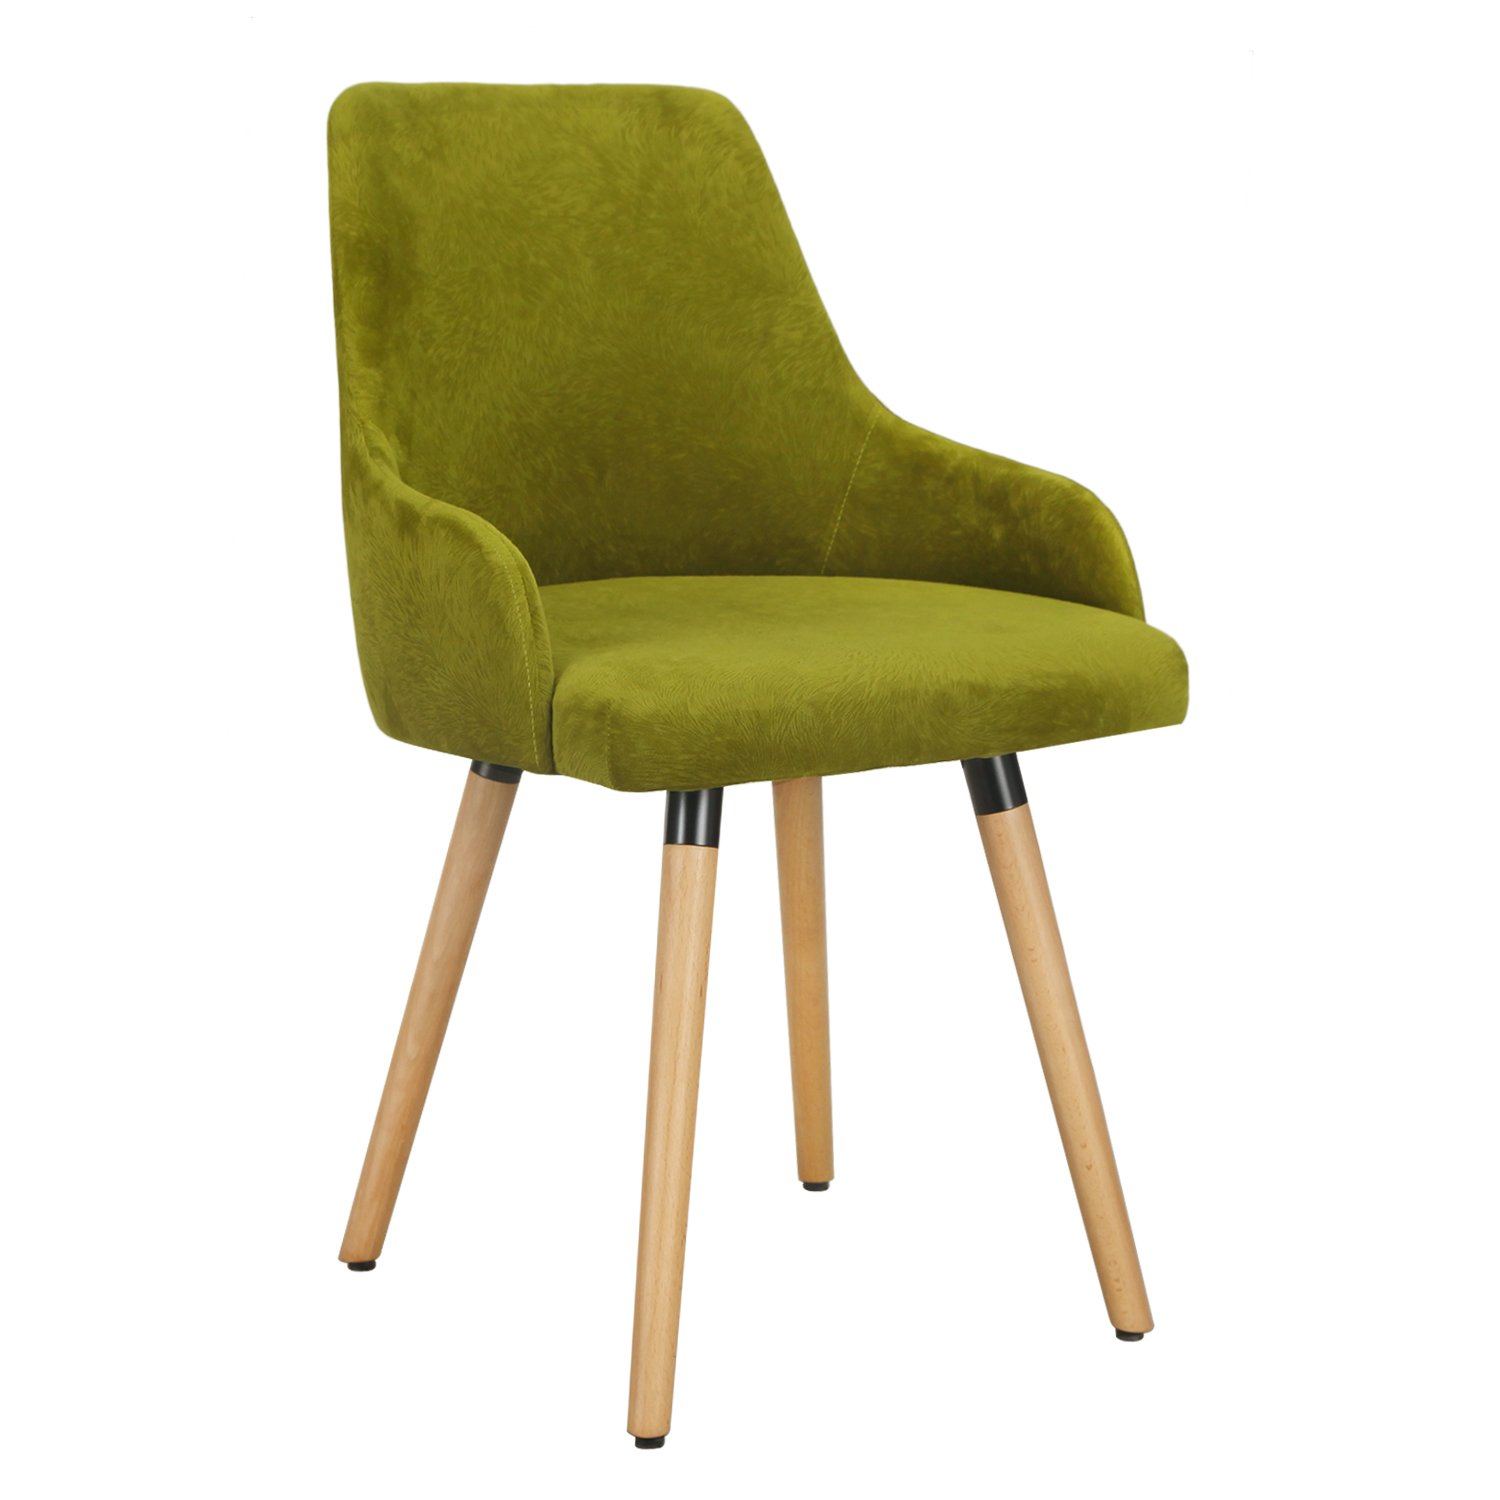 Homebeez Fabric Mid-century Modern Accent Leisure Chair (Single) (Green)